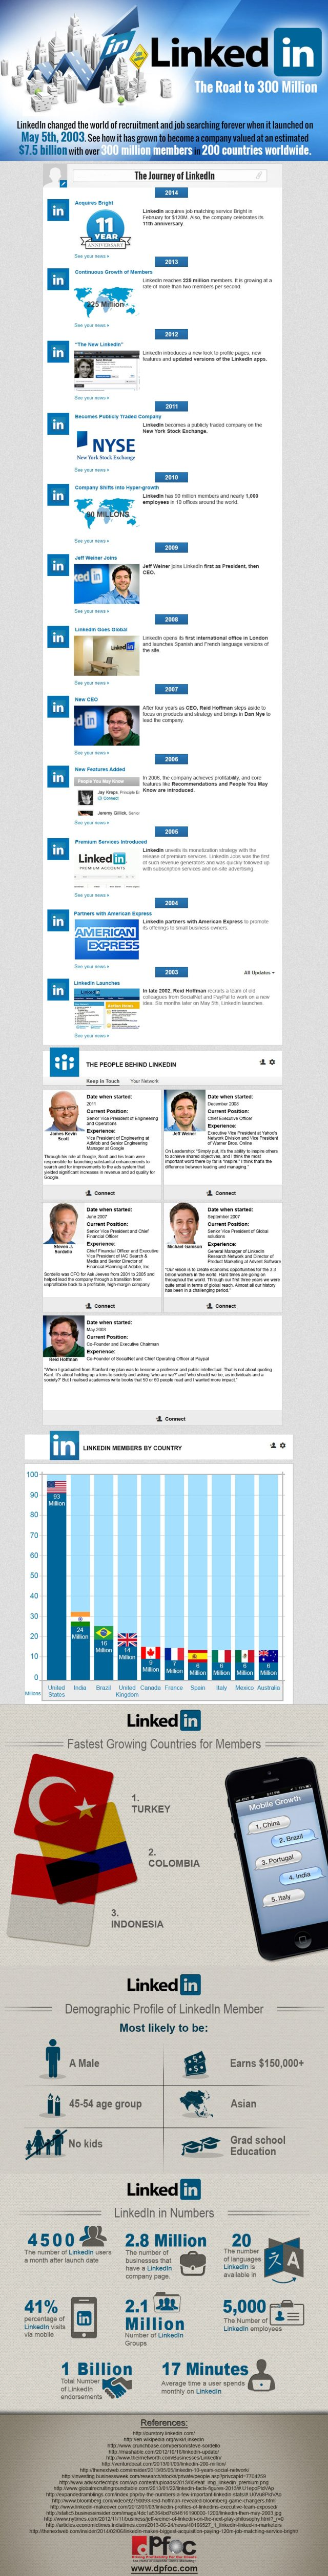 linkedin-in-numbers-info